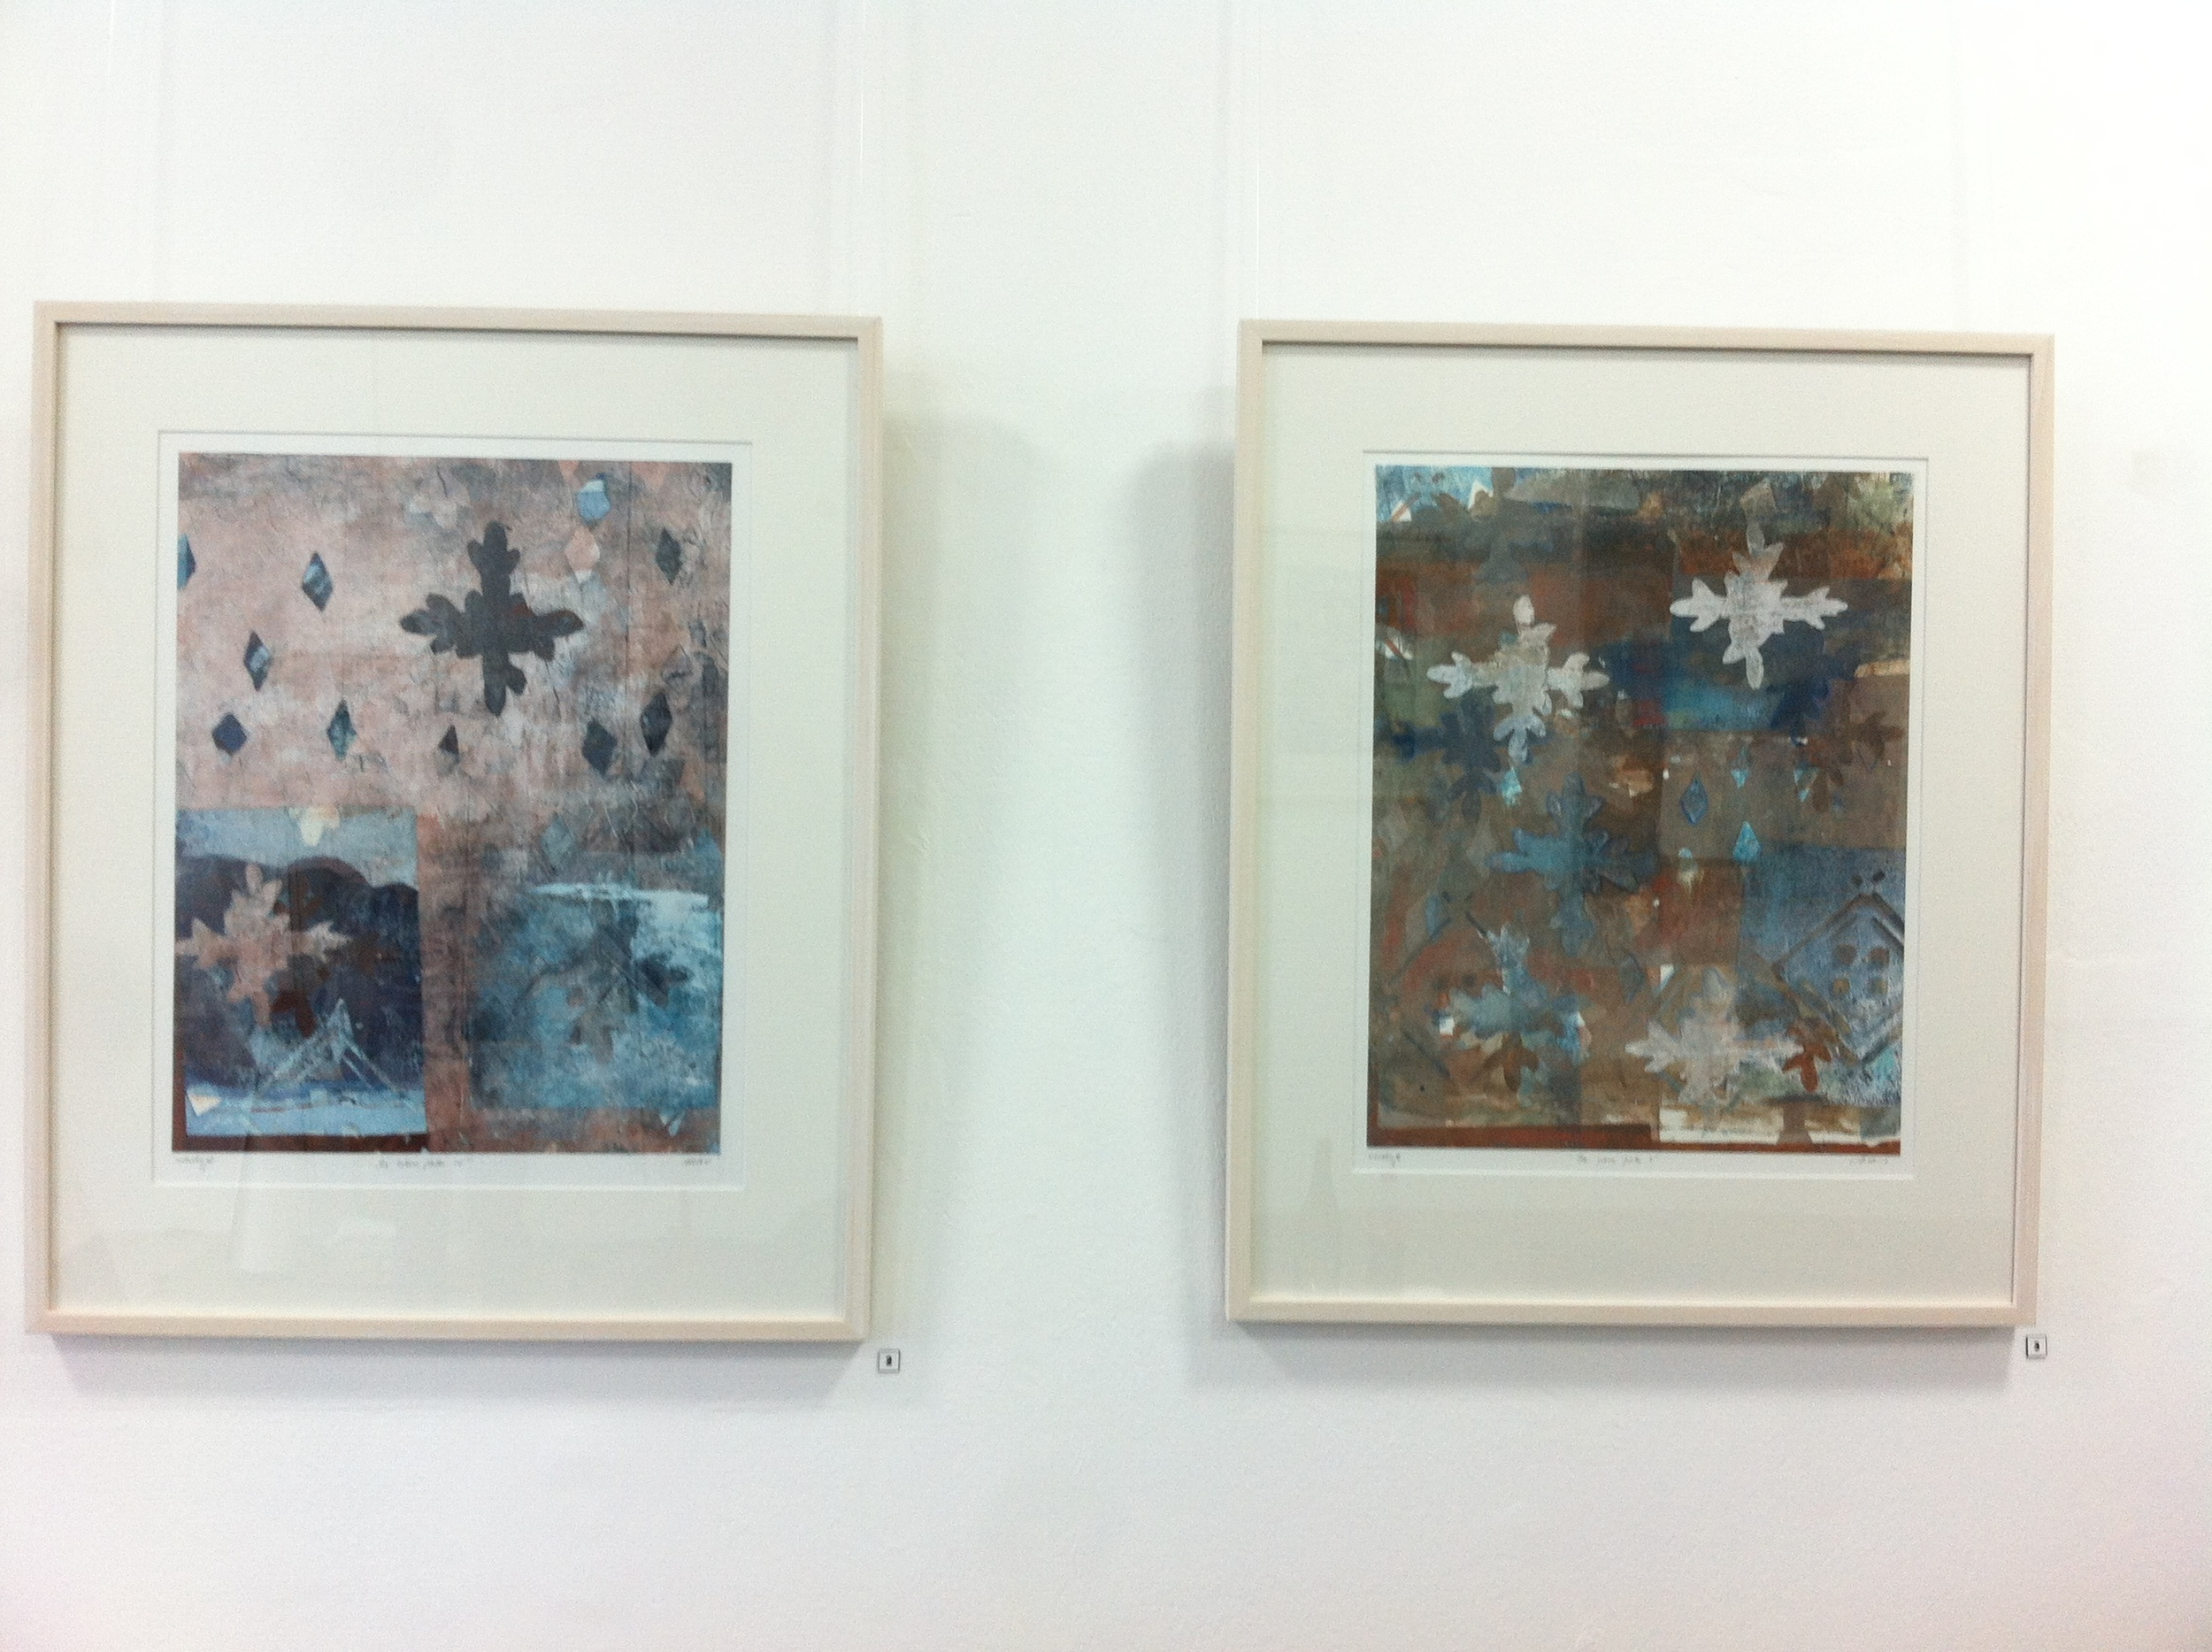 Example of gouache monotype works by Helene Leane